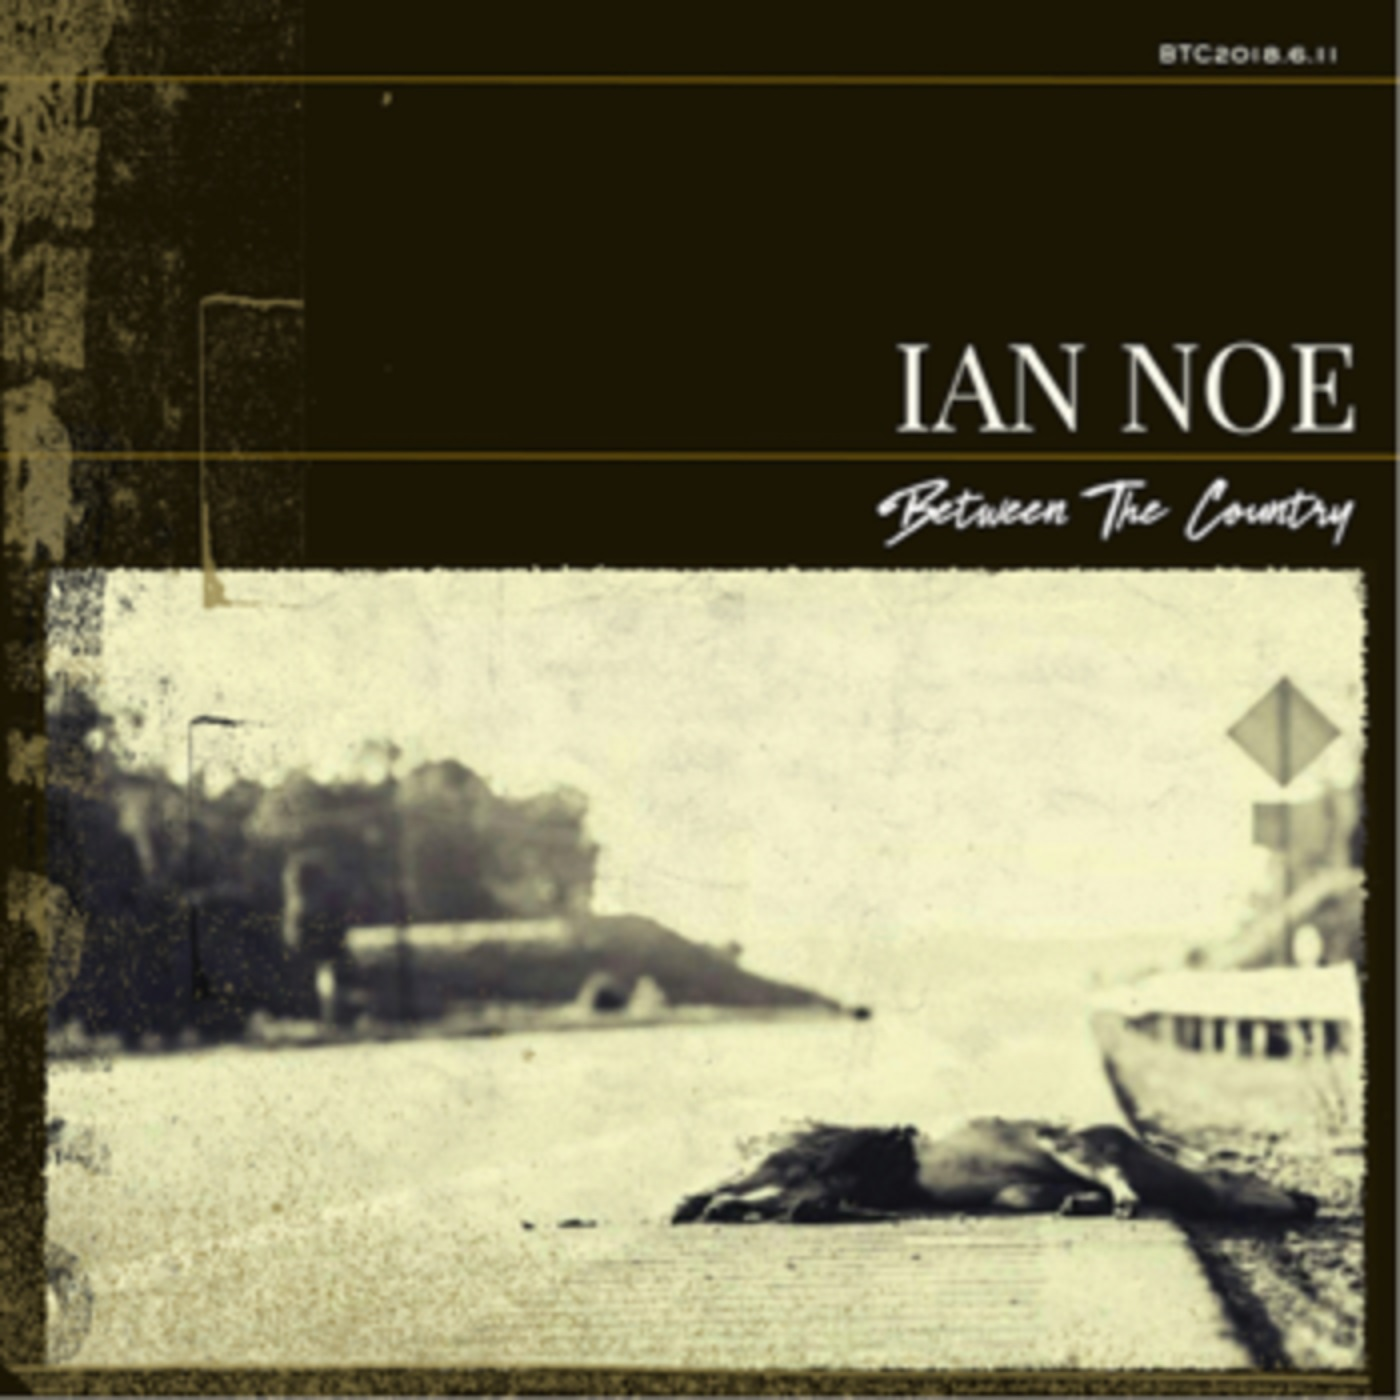 "Ian Noe's ""Between The Country"" music video premiere"